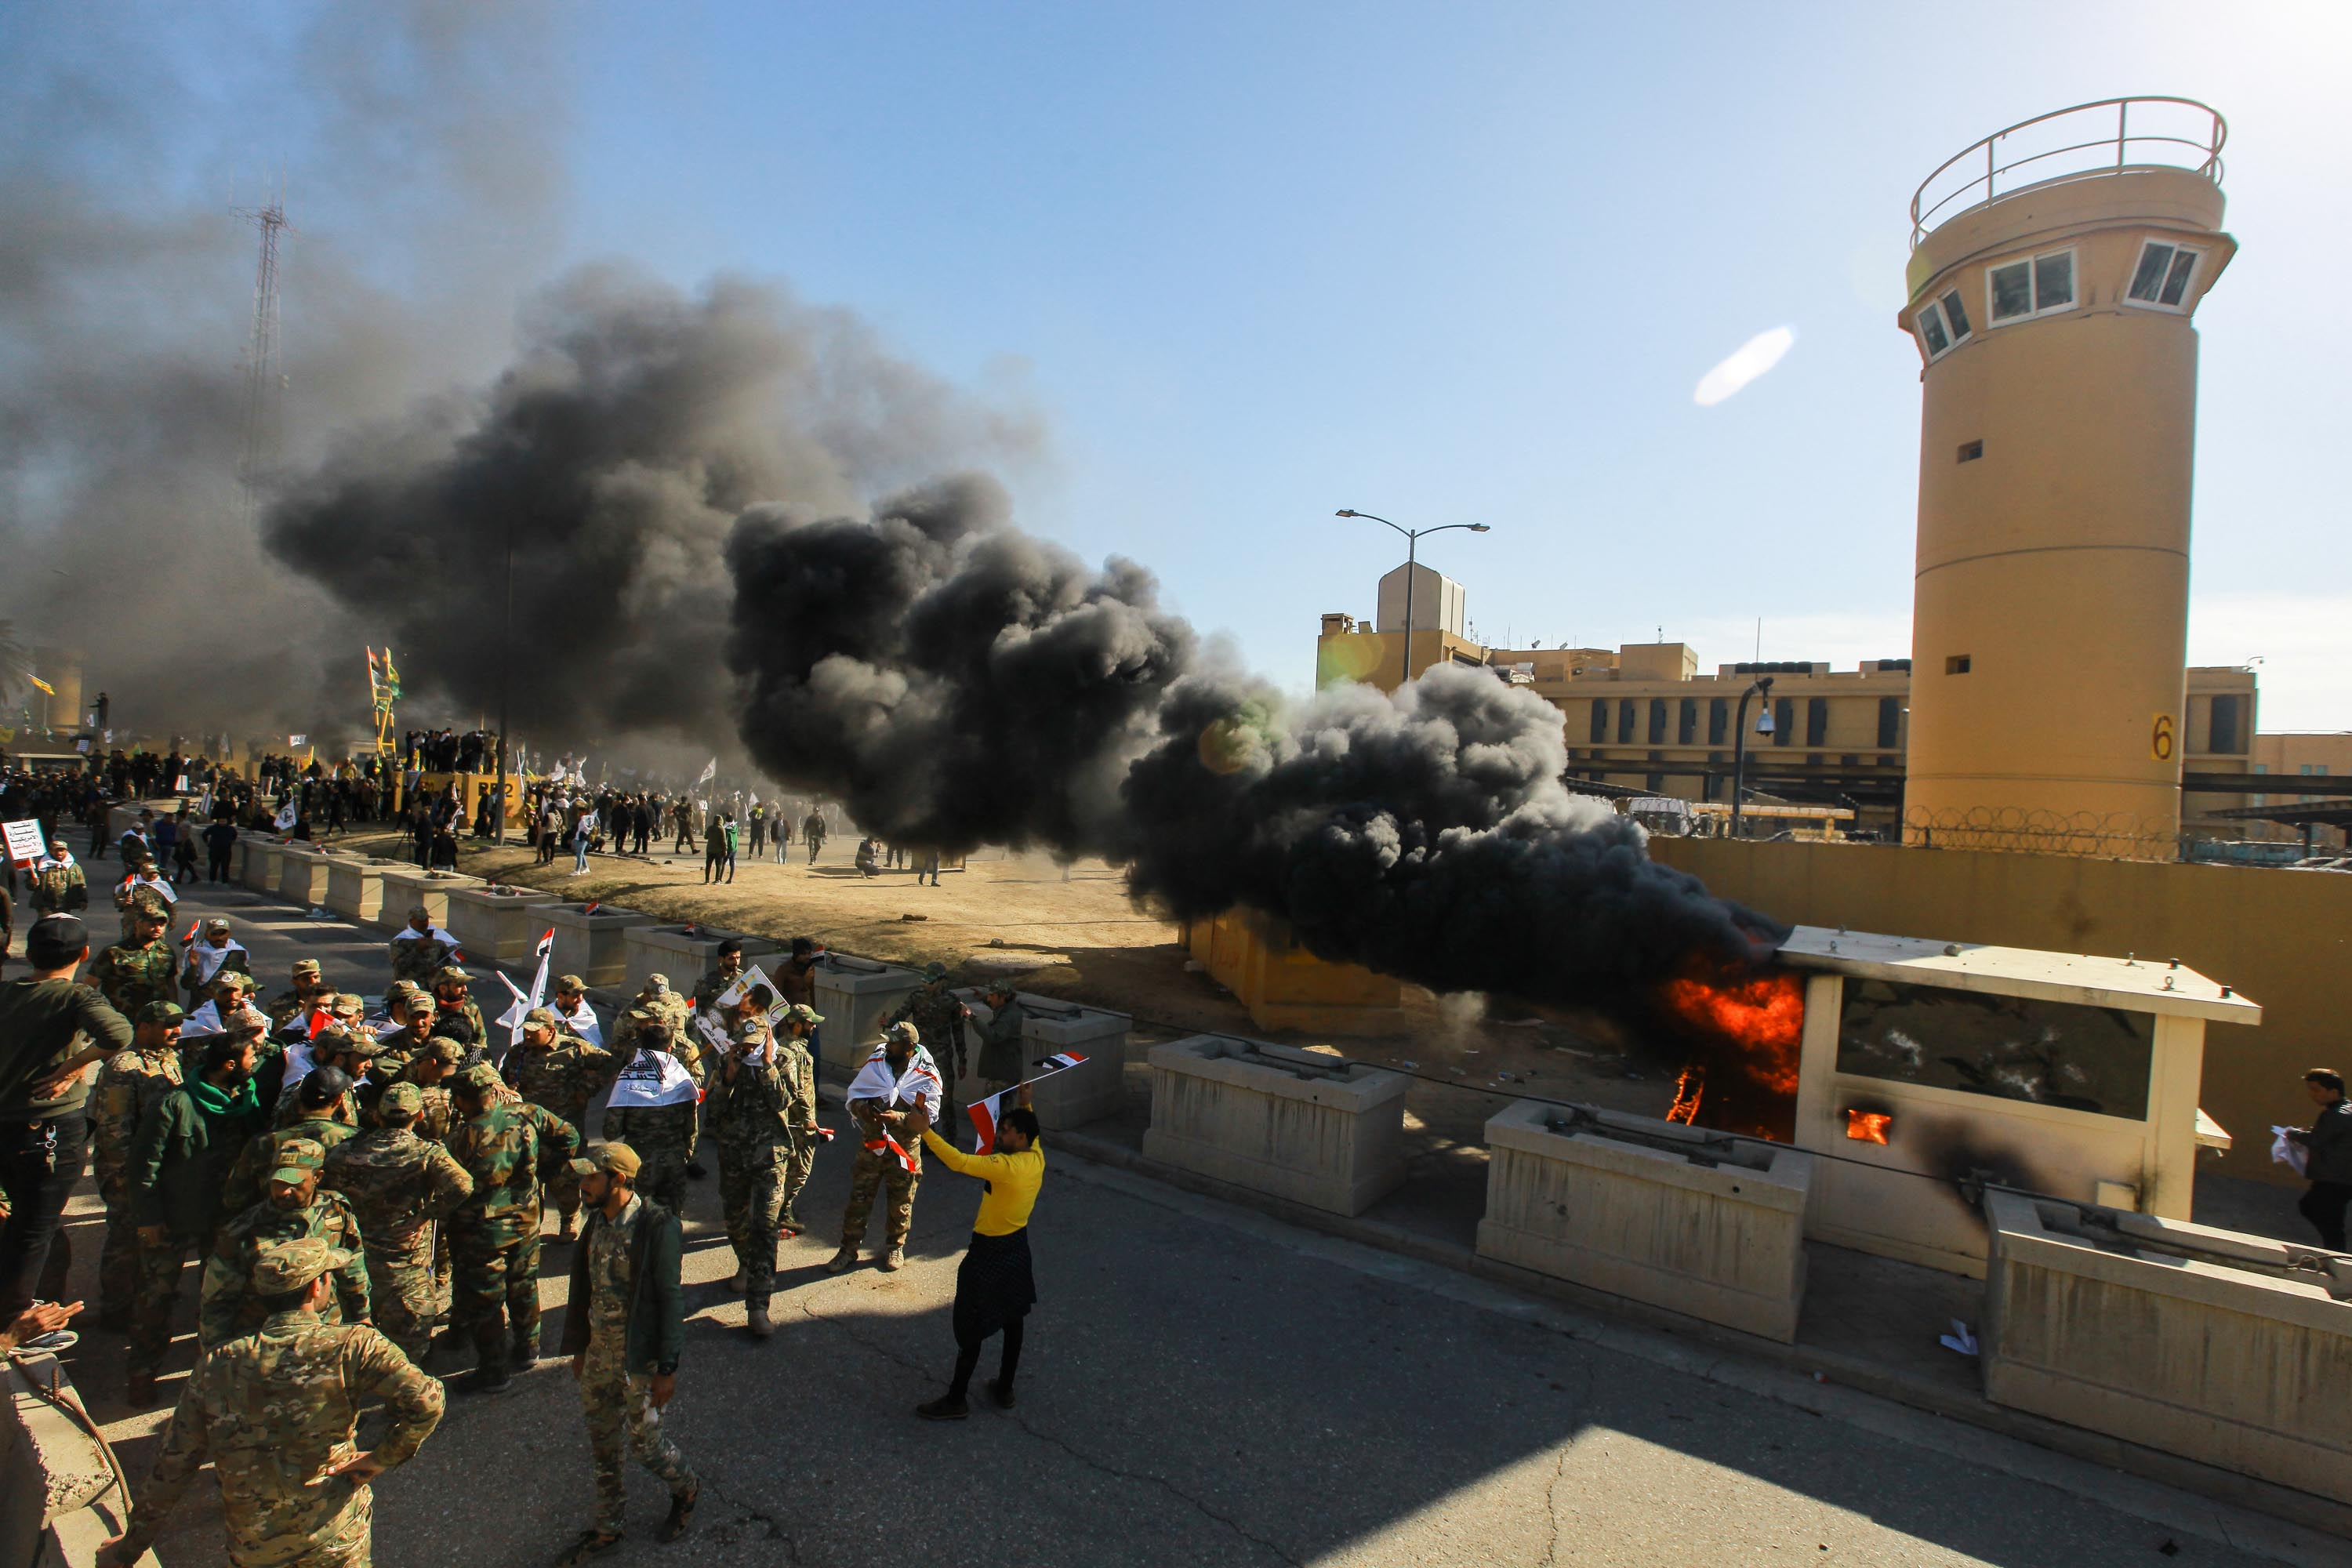 Protesters set a sentry box ablaze in front of the US embassy building in the Iraqi capital, Baghdad.